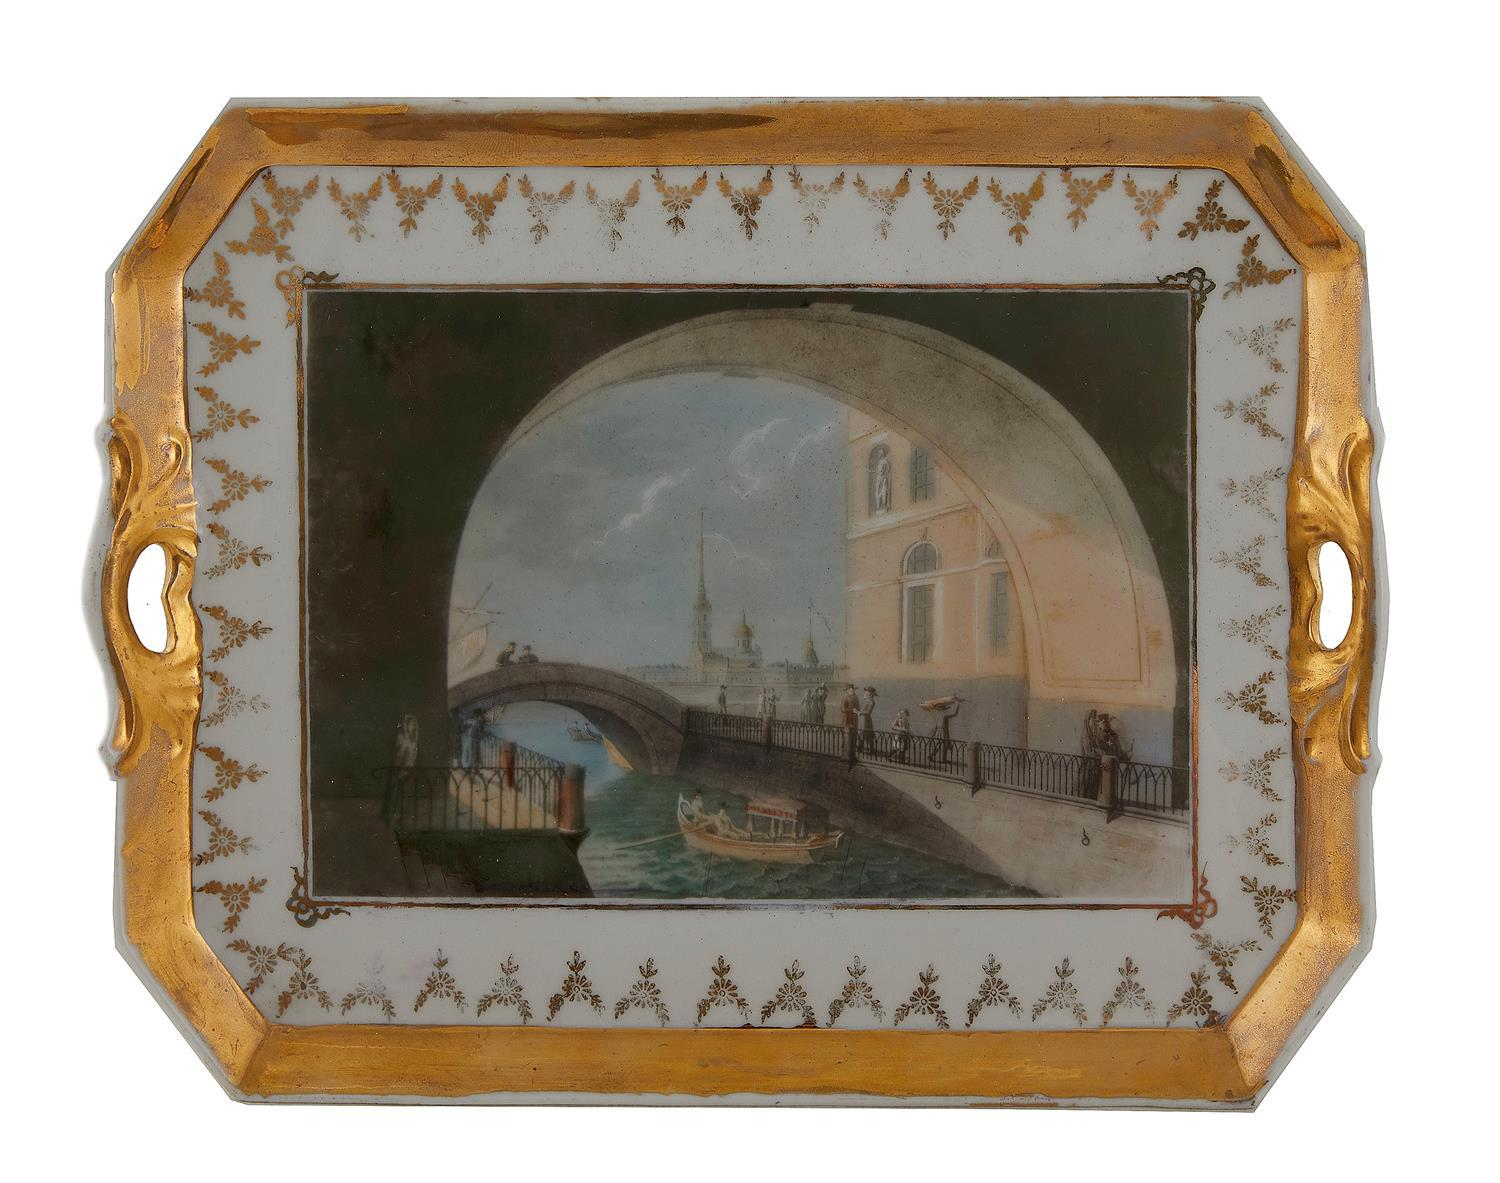 Russian pictorial porcelain tray, Kornilov